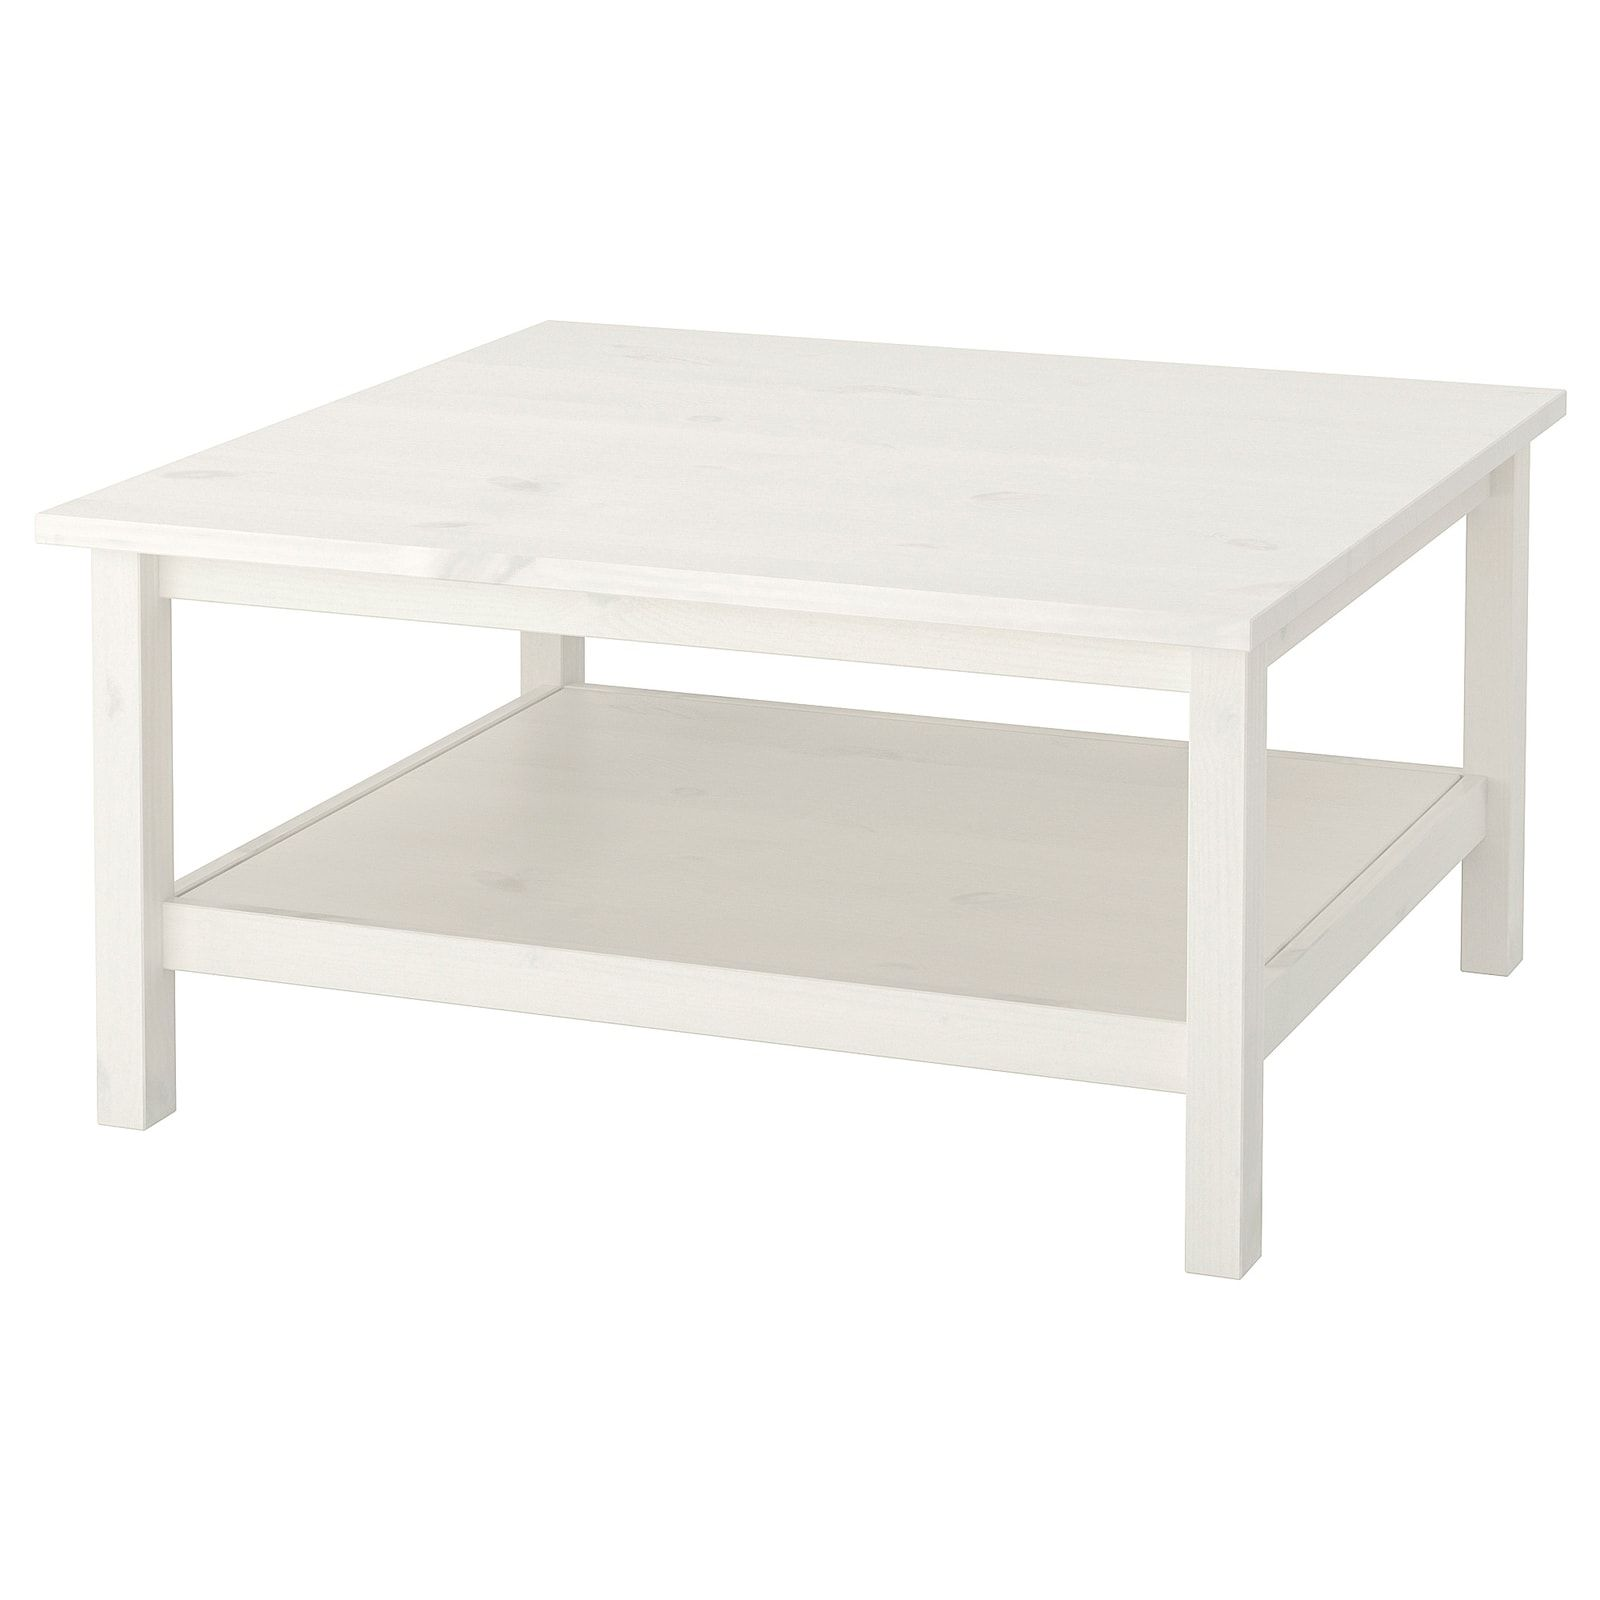 Hemnes Coffee Table White Stain 353 8x353 8 90x90 Cm Ikea In 2021 Ikea Hemnes Coffee Table Coffee Table White Coffee Table [ 1600 x 1600 Pixel ]